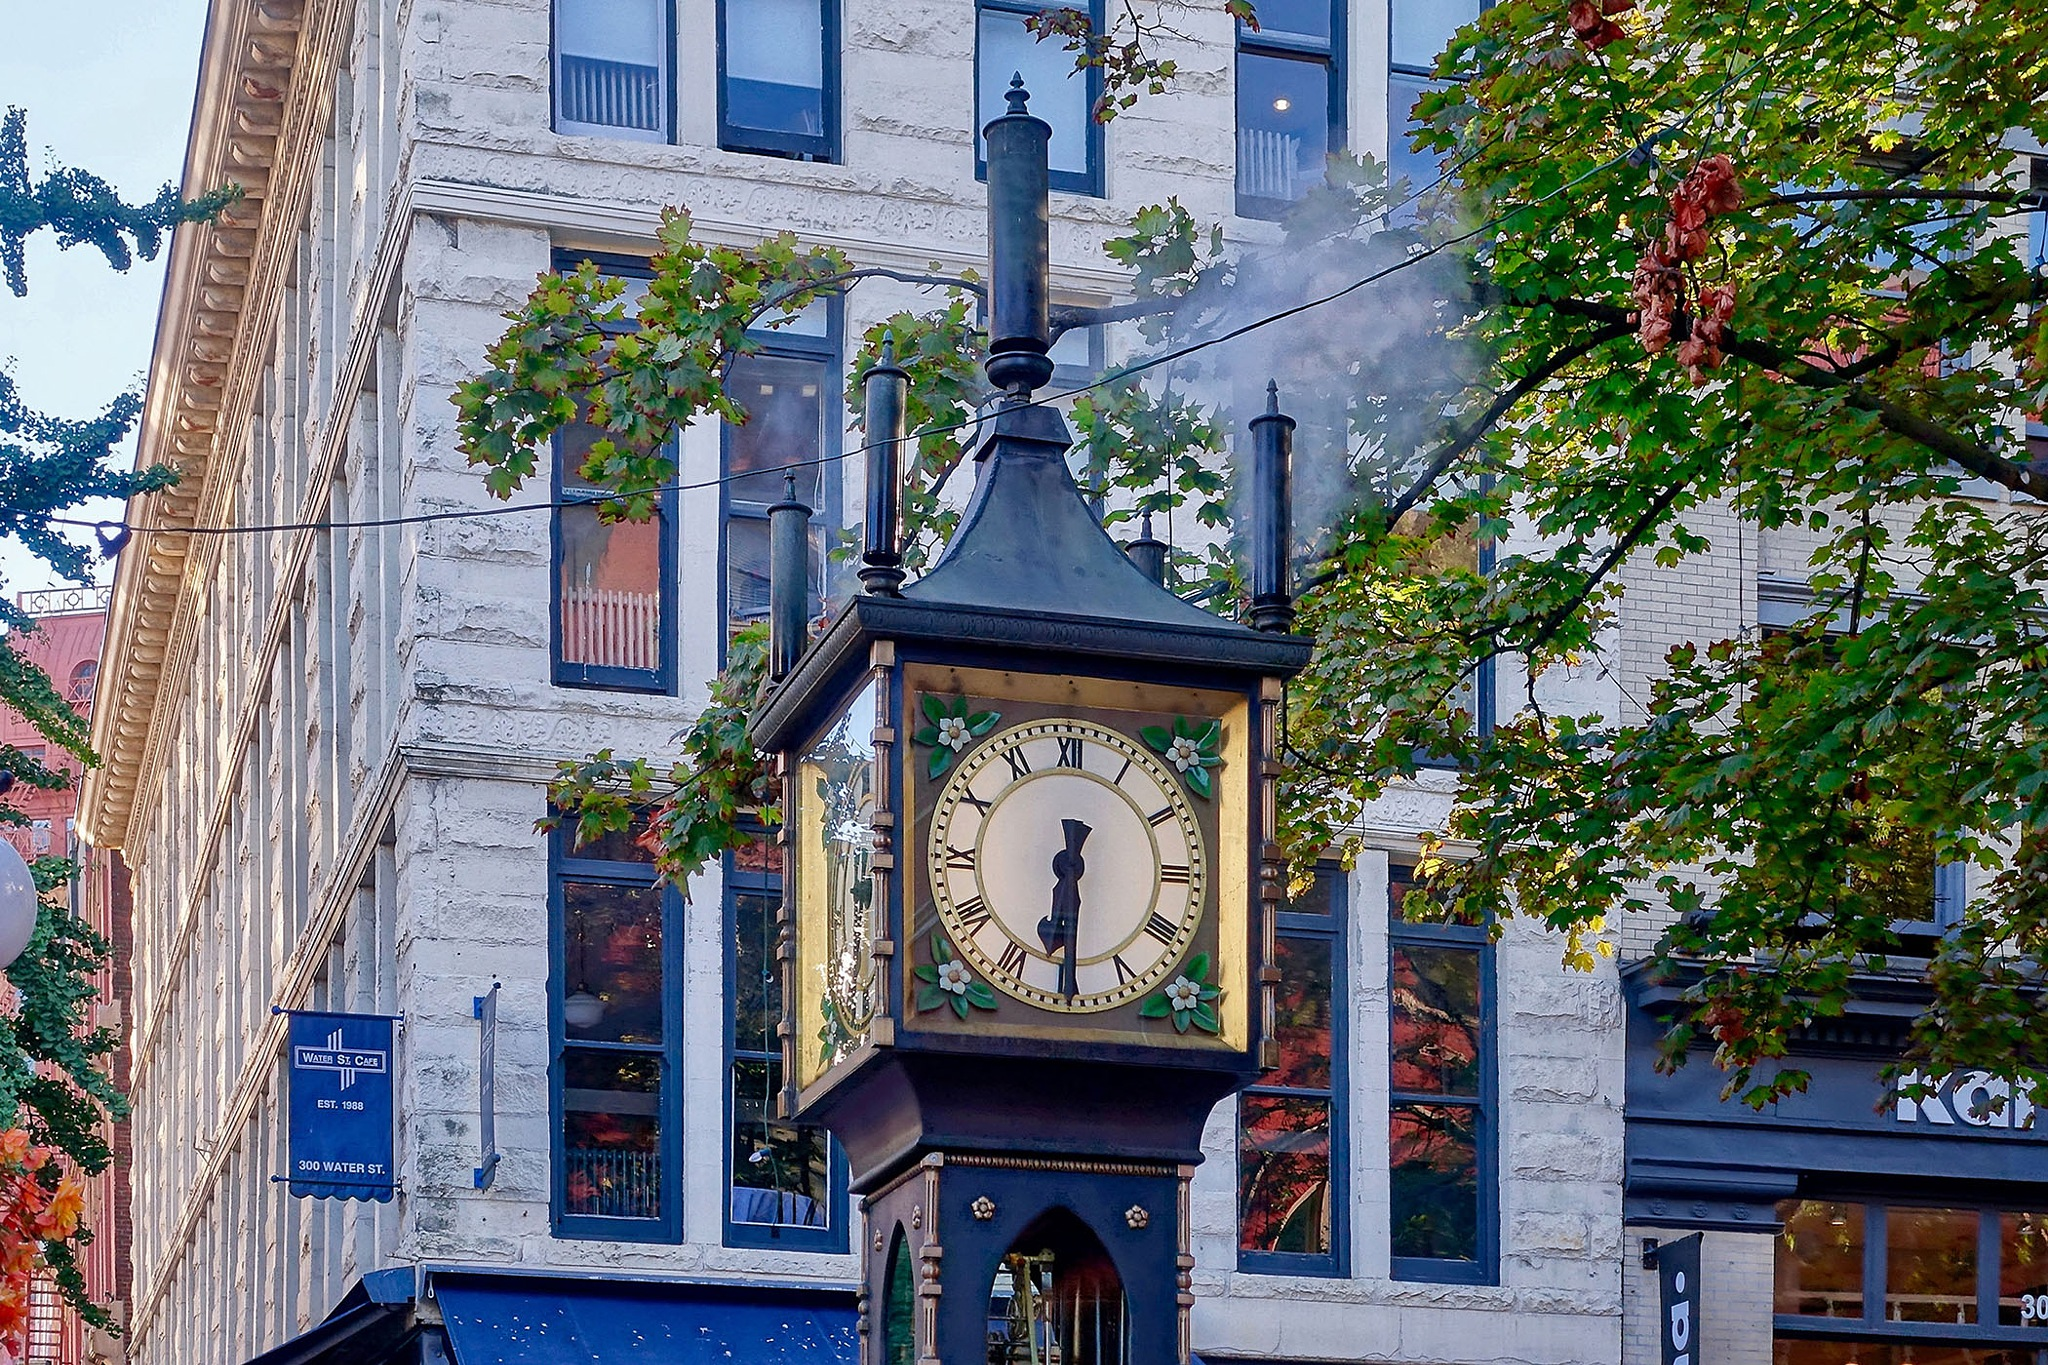 The steam clock in Vancouver in Canada. by Erwin Widmer